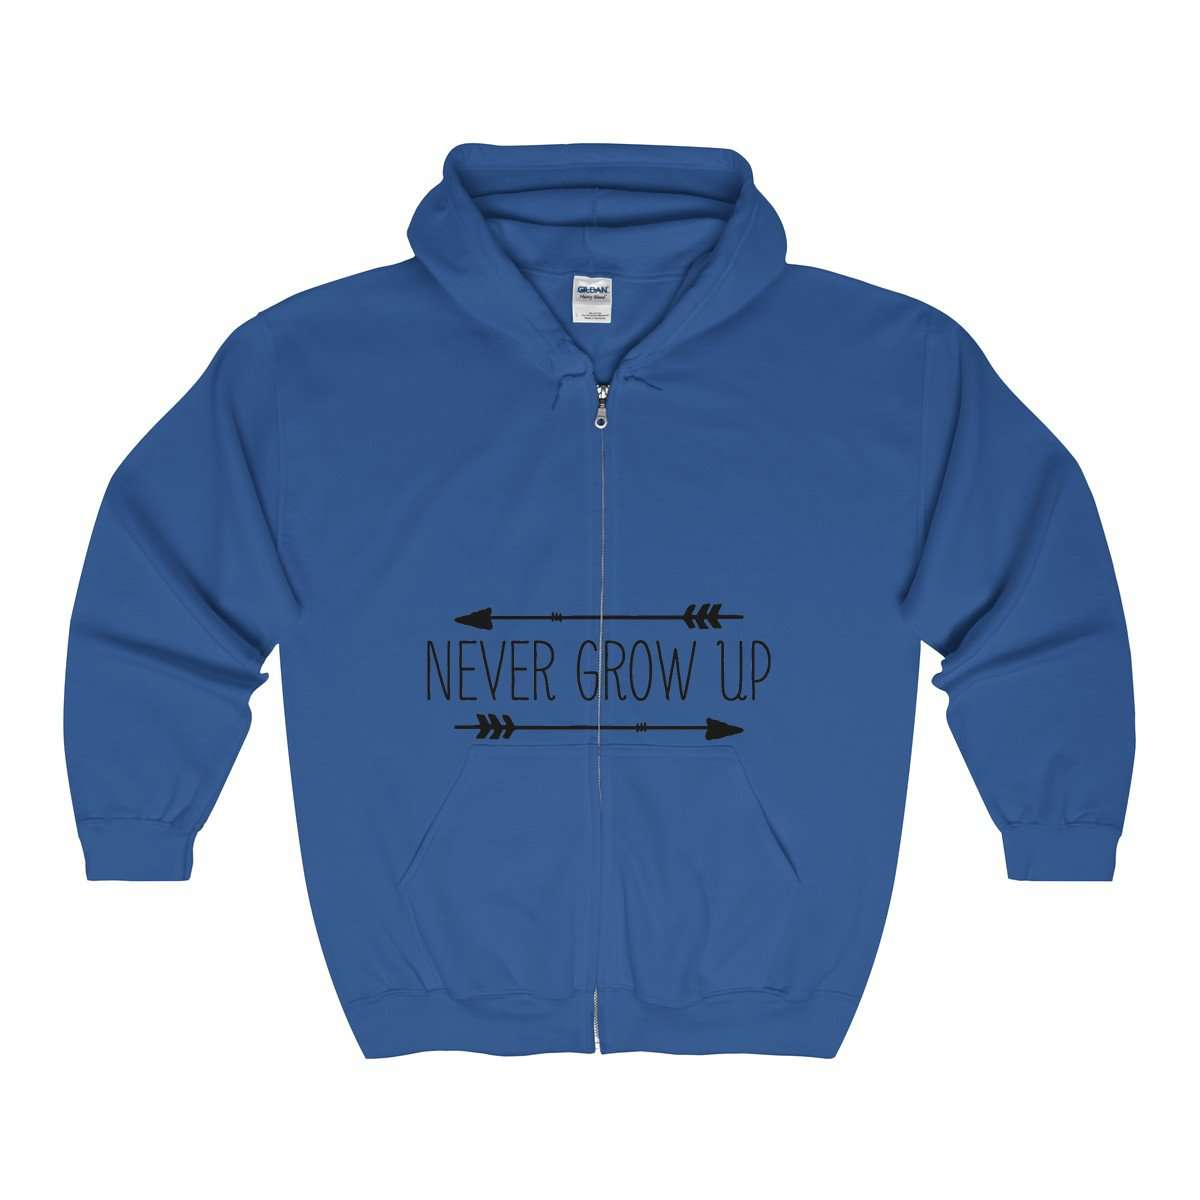 Unisex Full Zip Hooded Sweatshirt